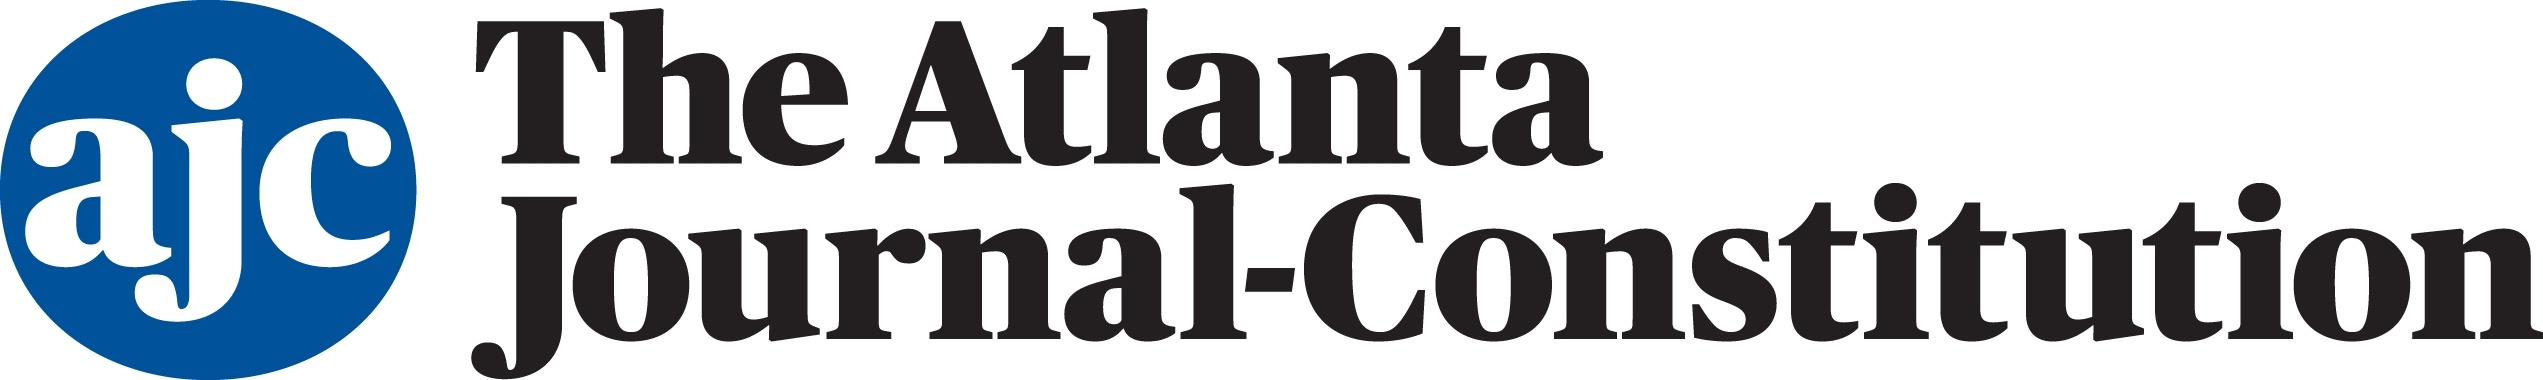 Atlanta Journal Constitution